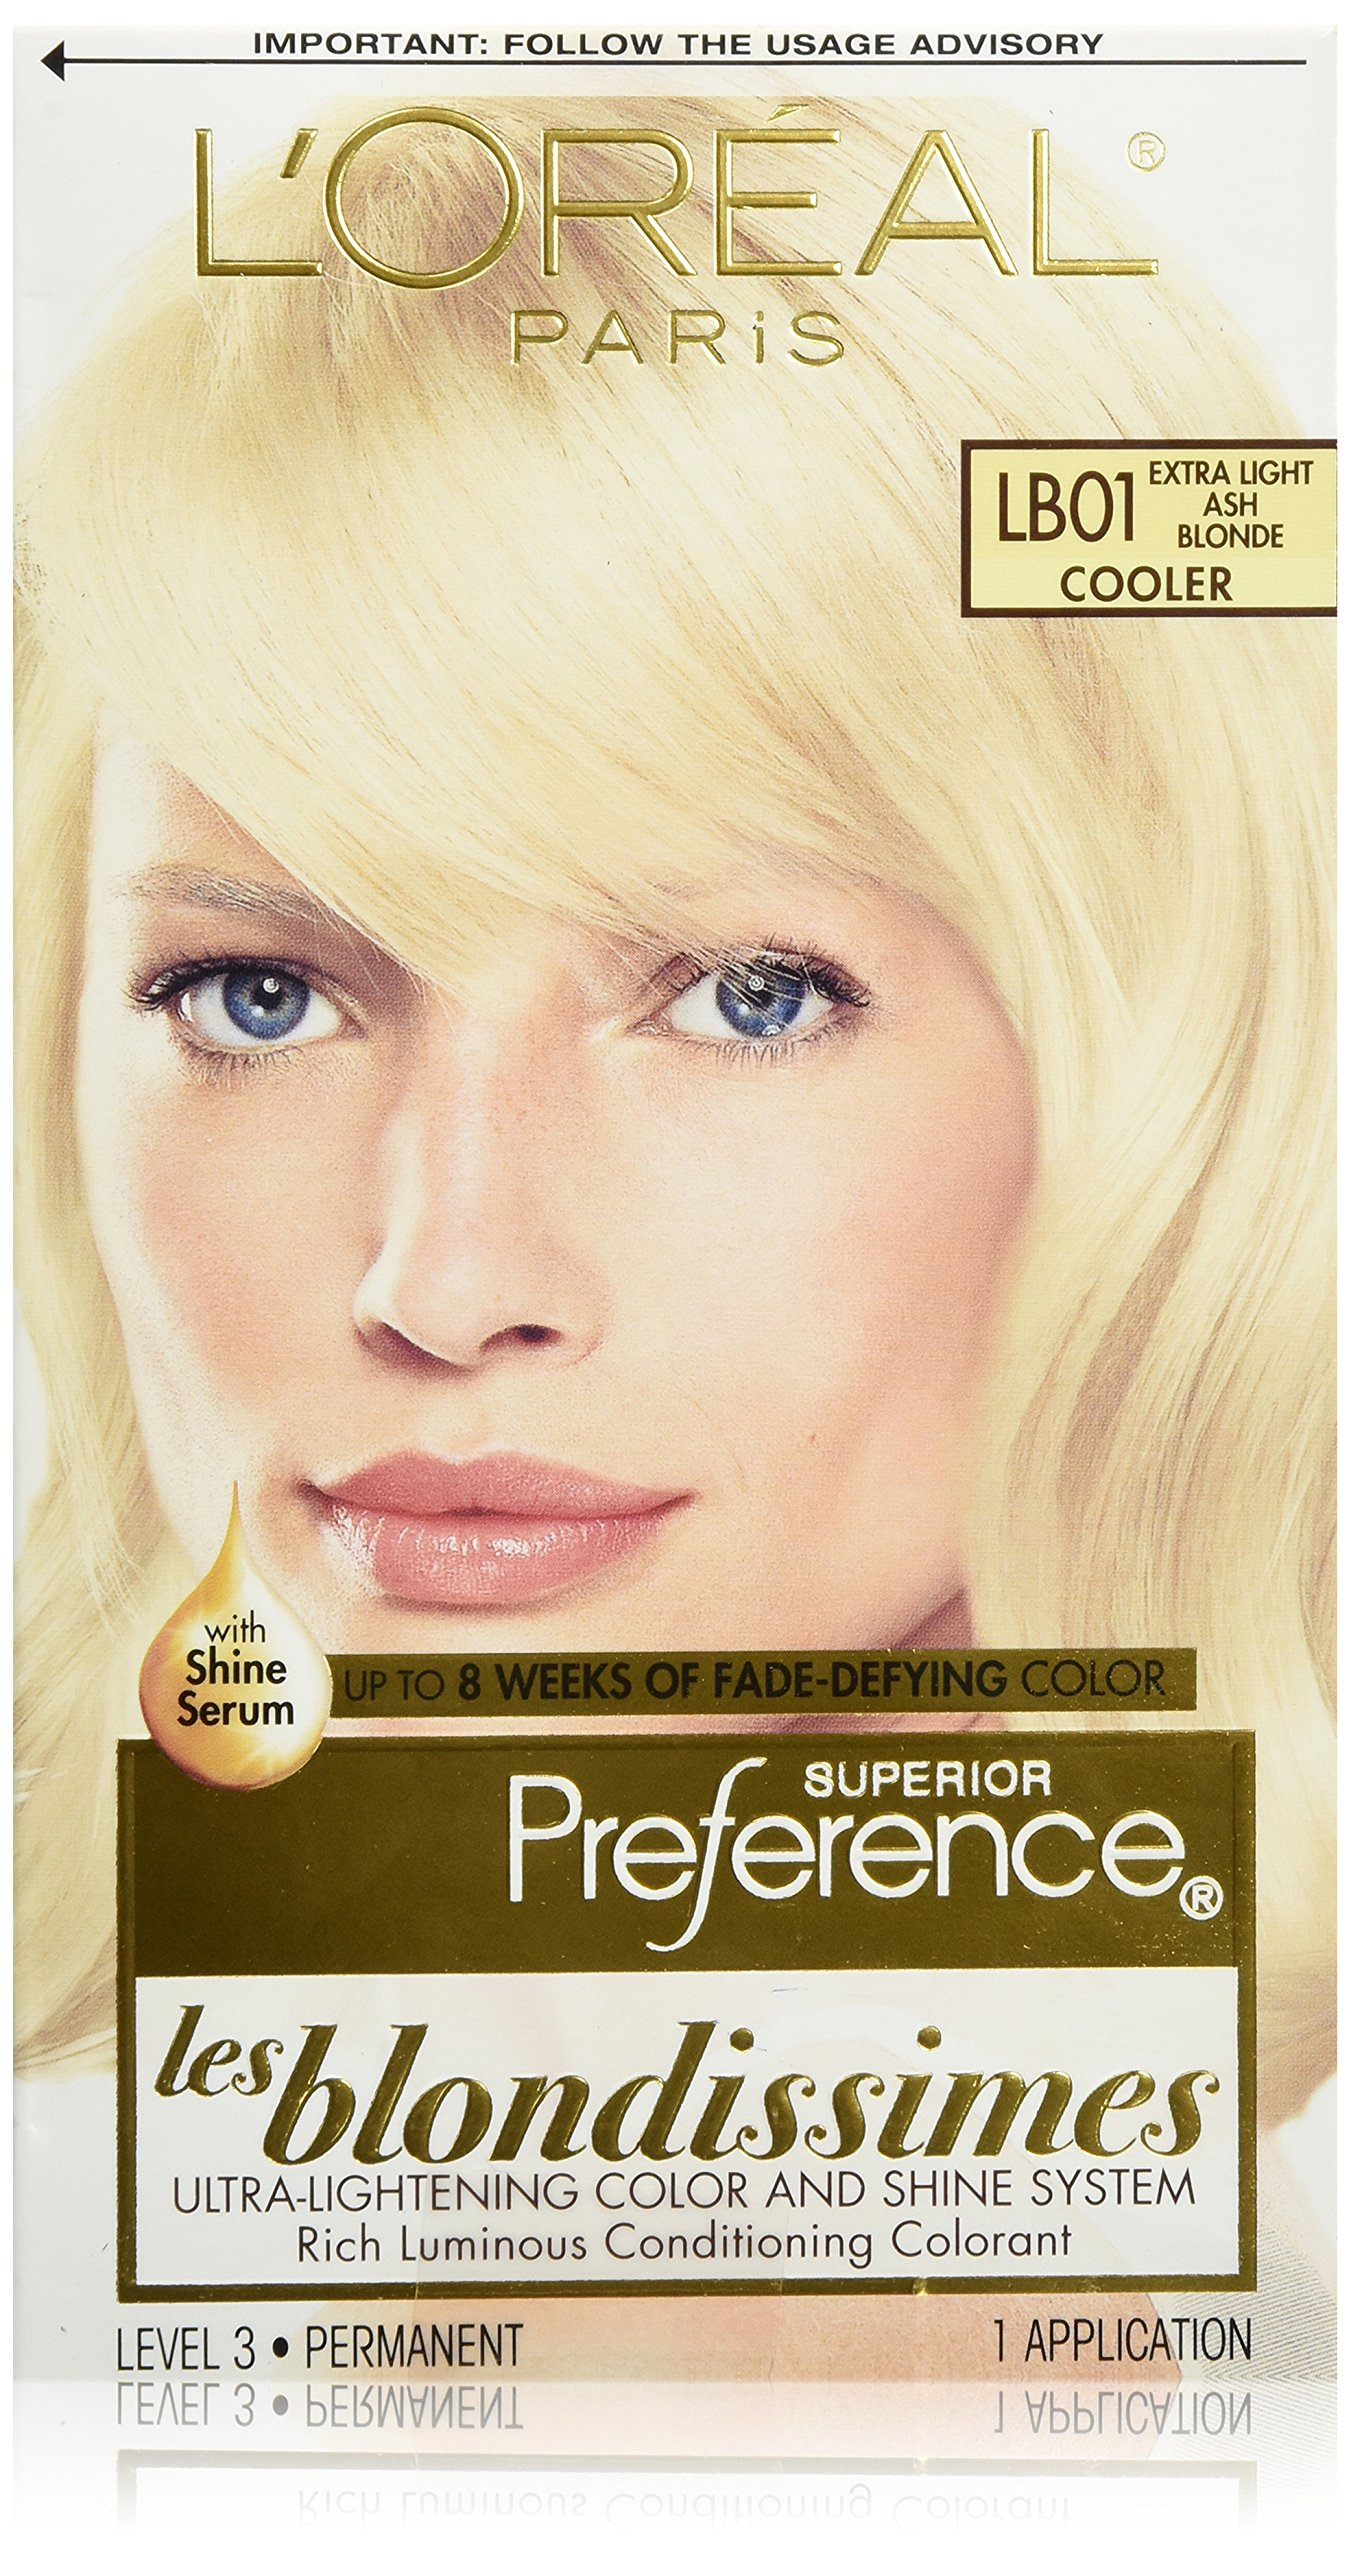 loreal color corrector blondes instructions